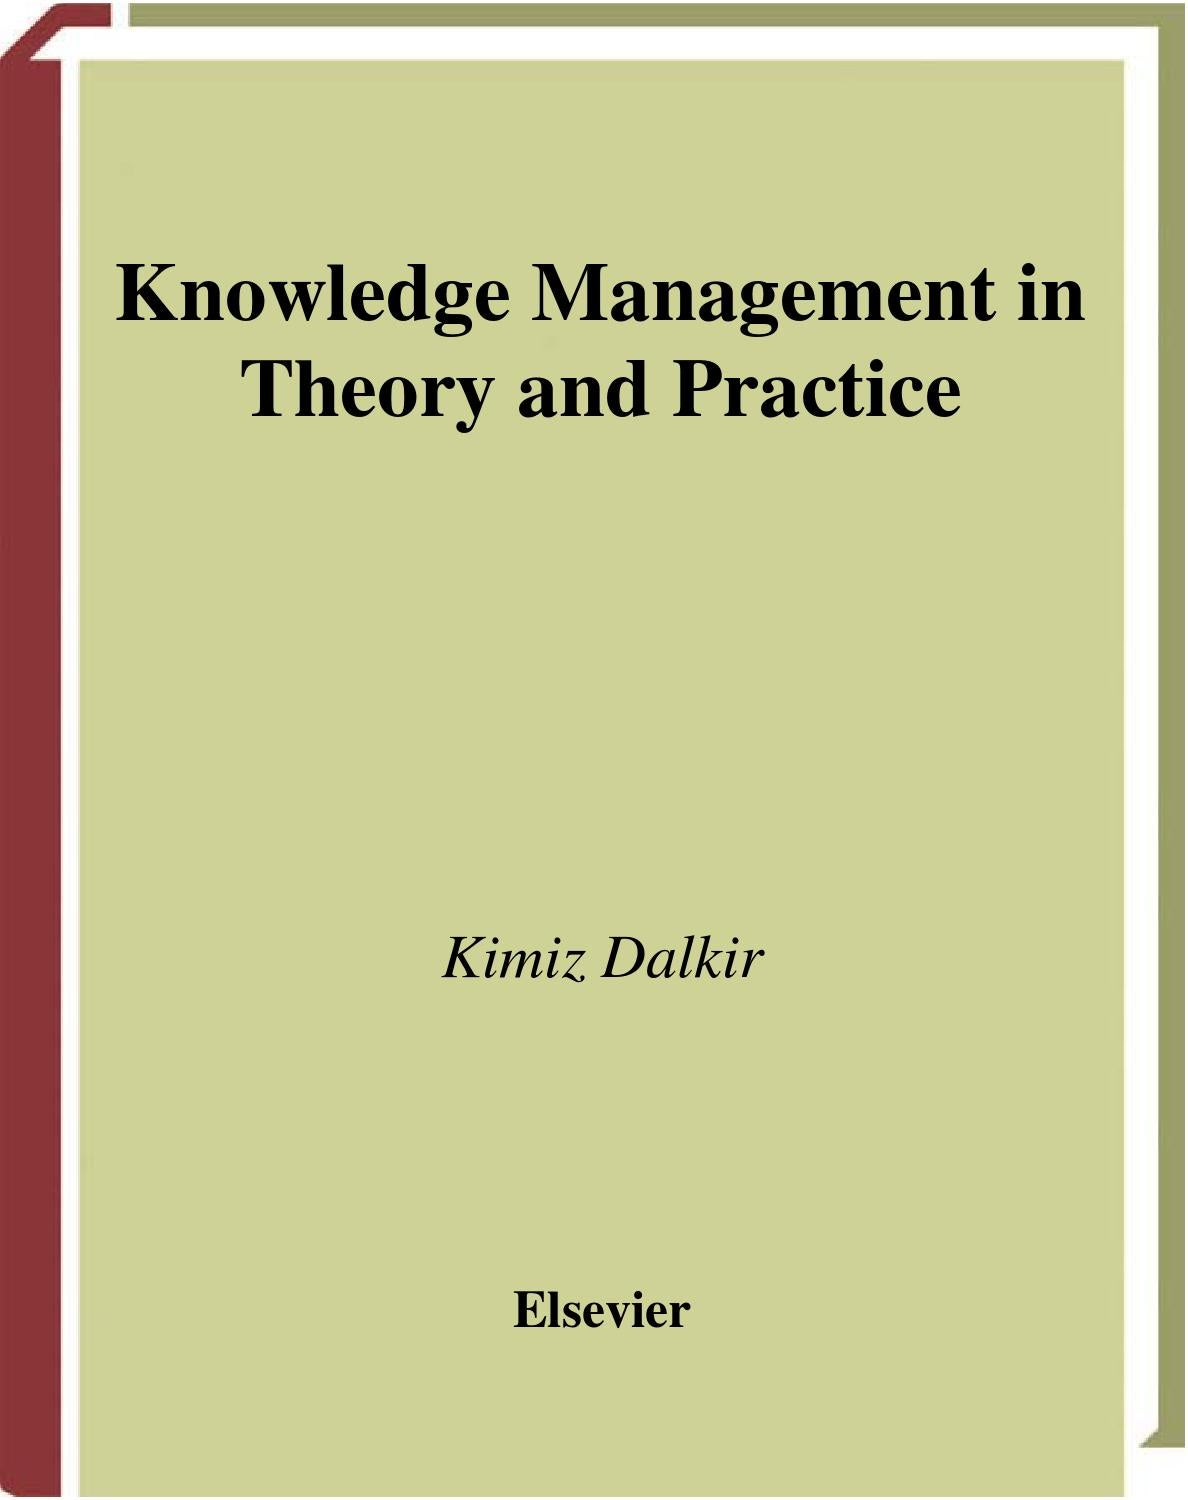 thesis on knowledge management system